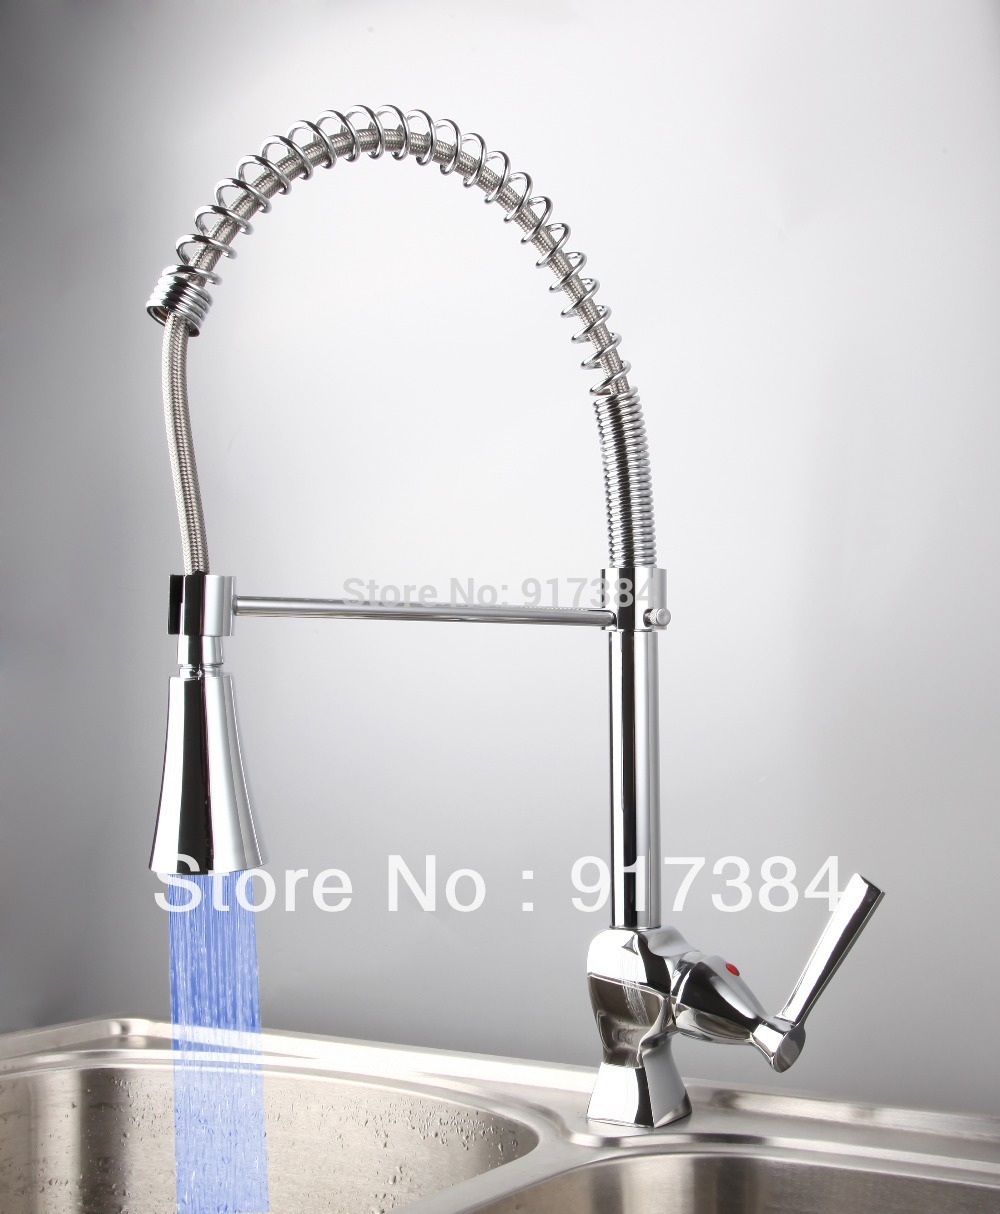 Pull Out Kitchen Swivel Spout Single Handle Sink Faucet LED Color Spray Mixer Tap Chrome CM